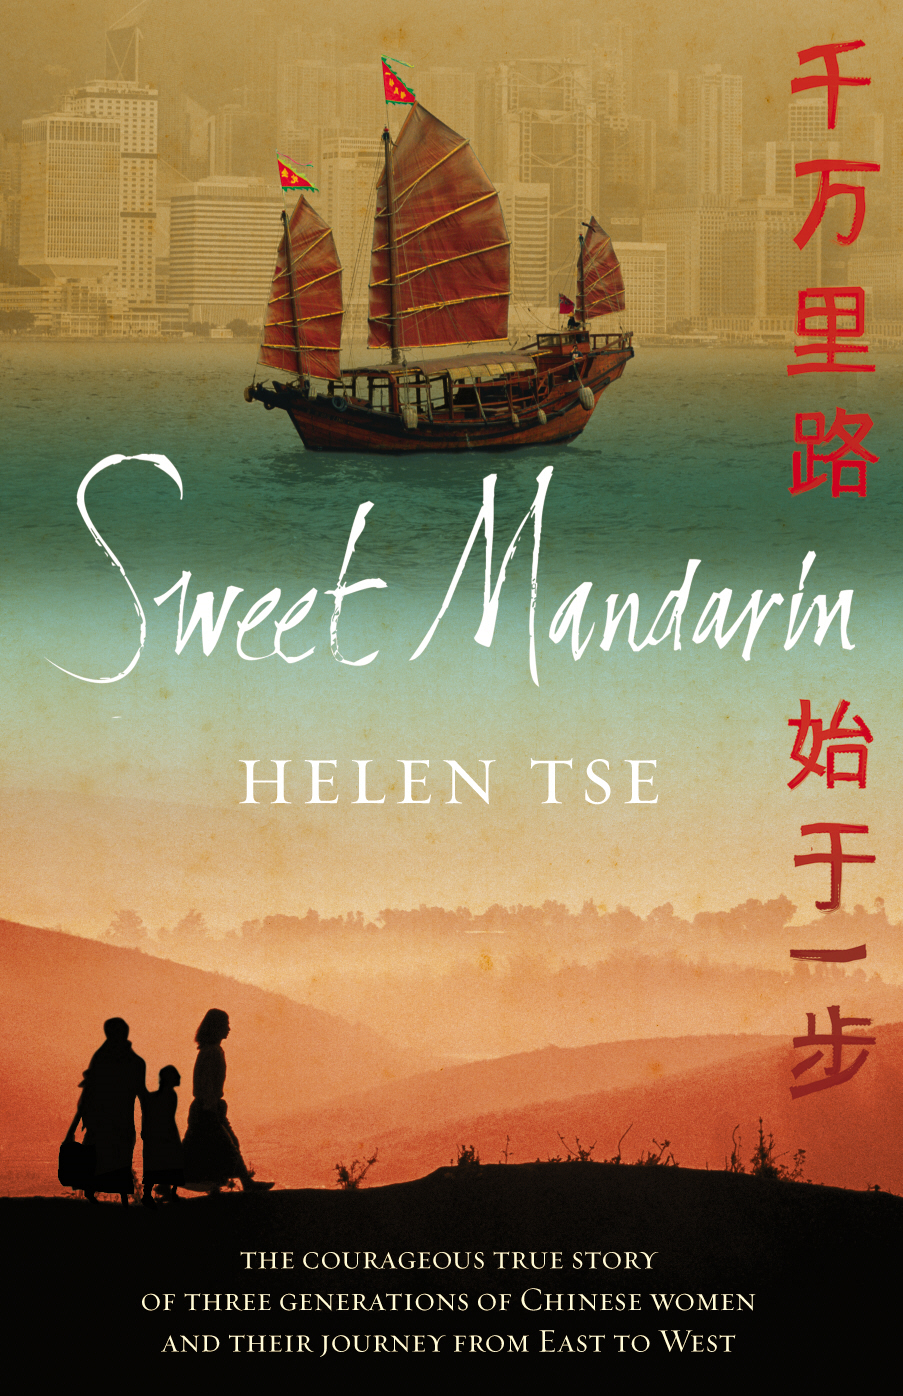 Sweet Mandarin The Courageous True Story of Three Generations of Chinese Women and their Journey from East to West